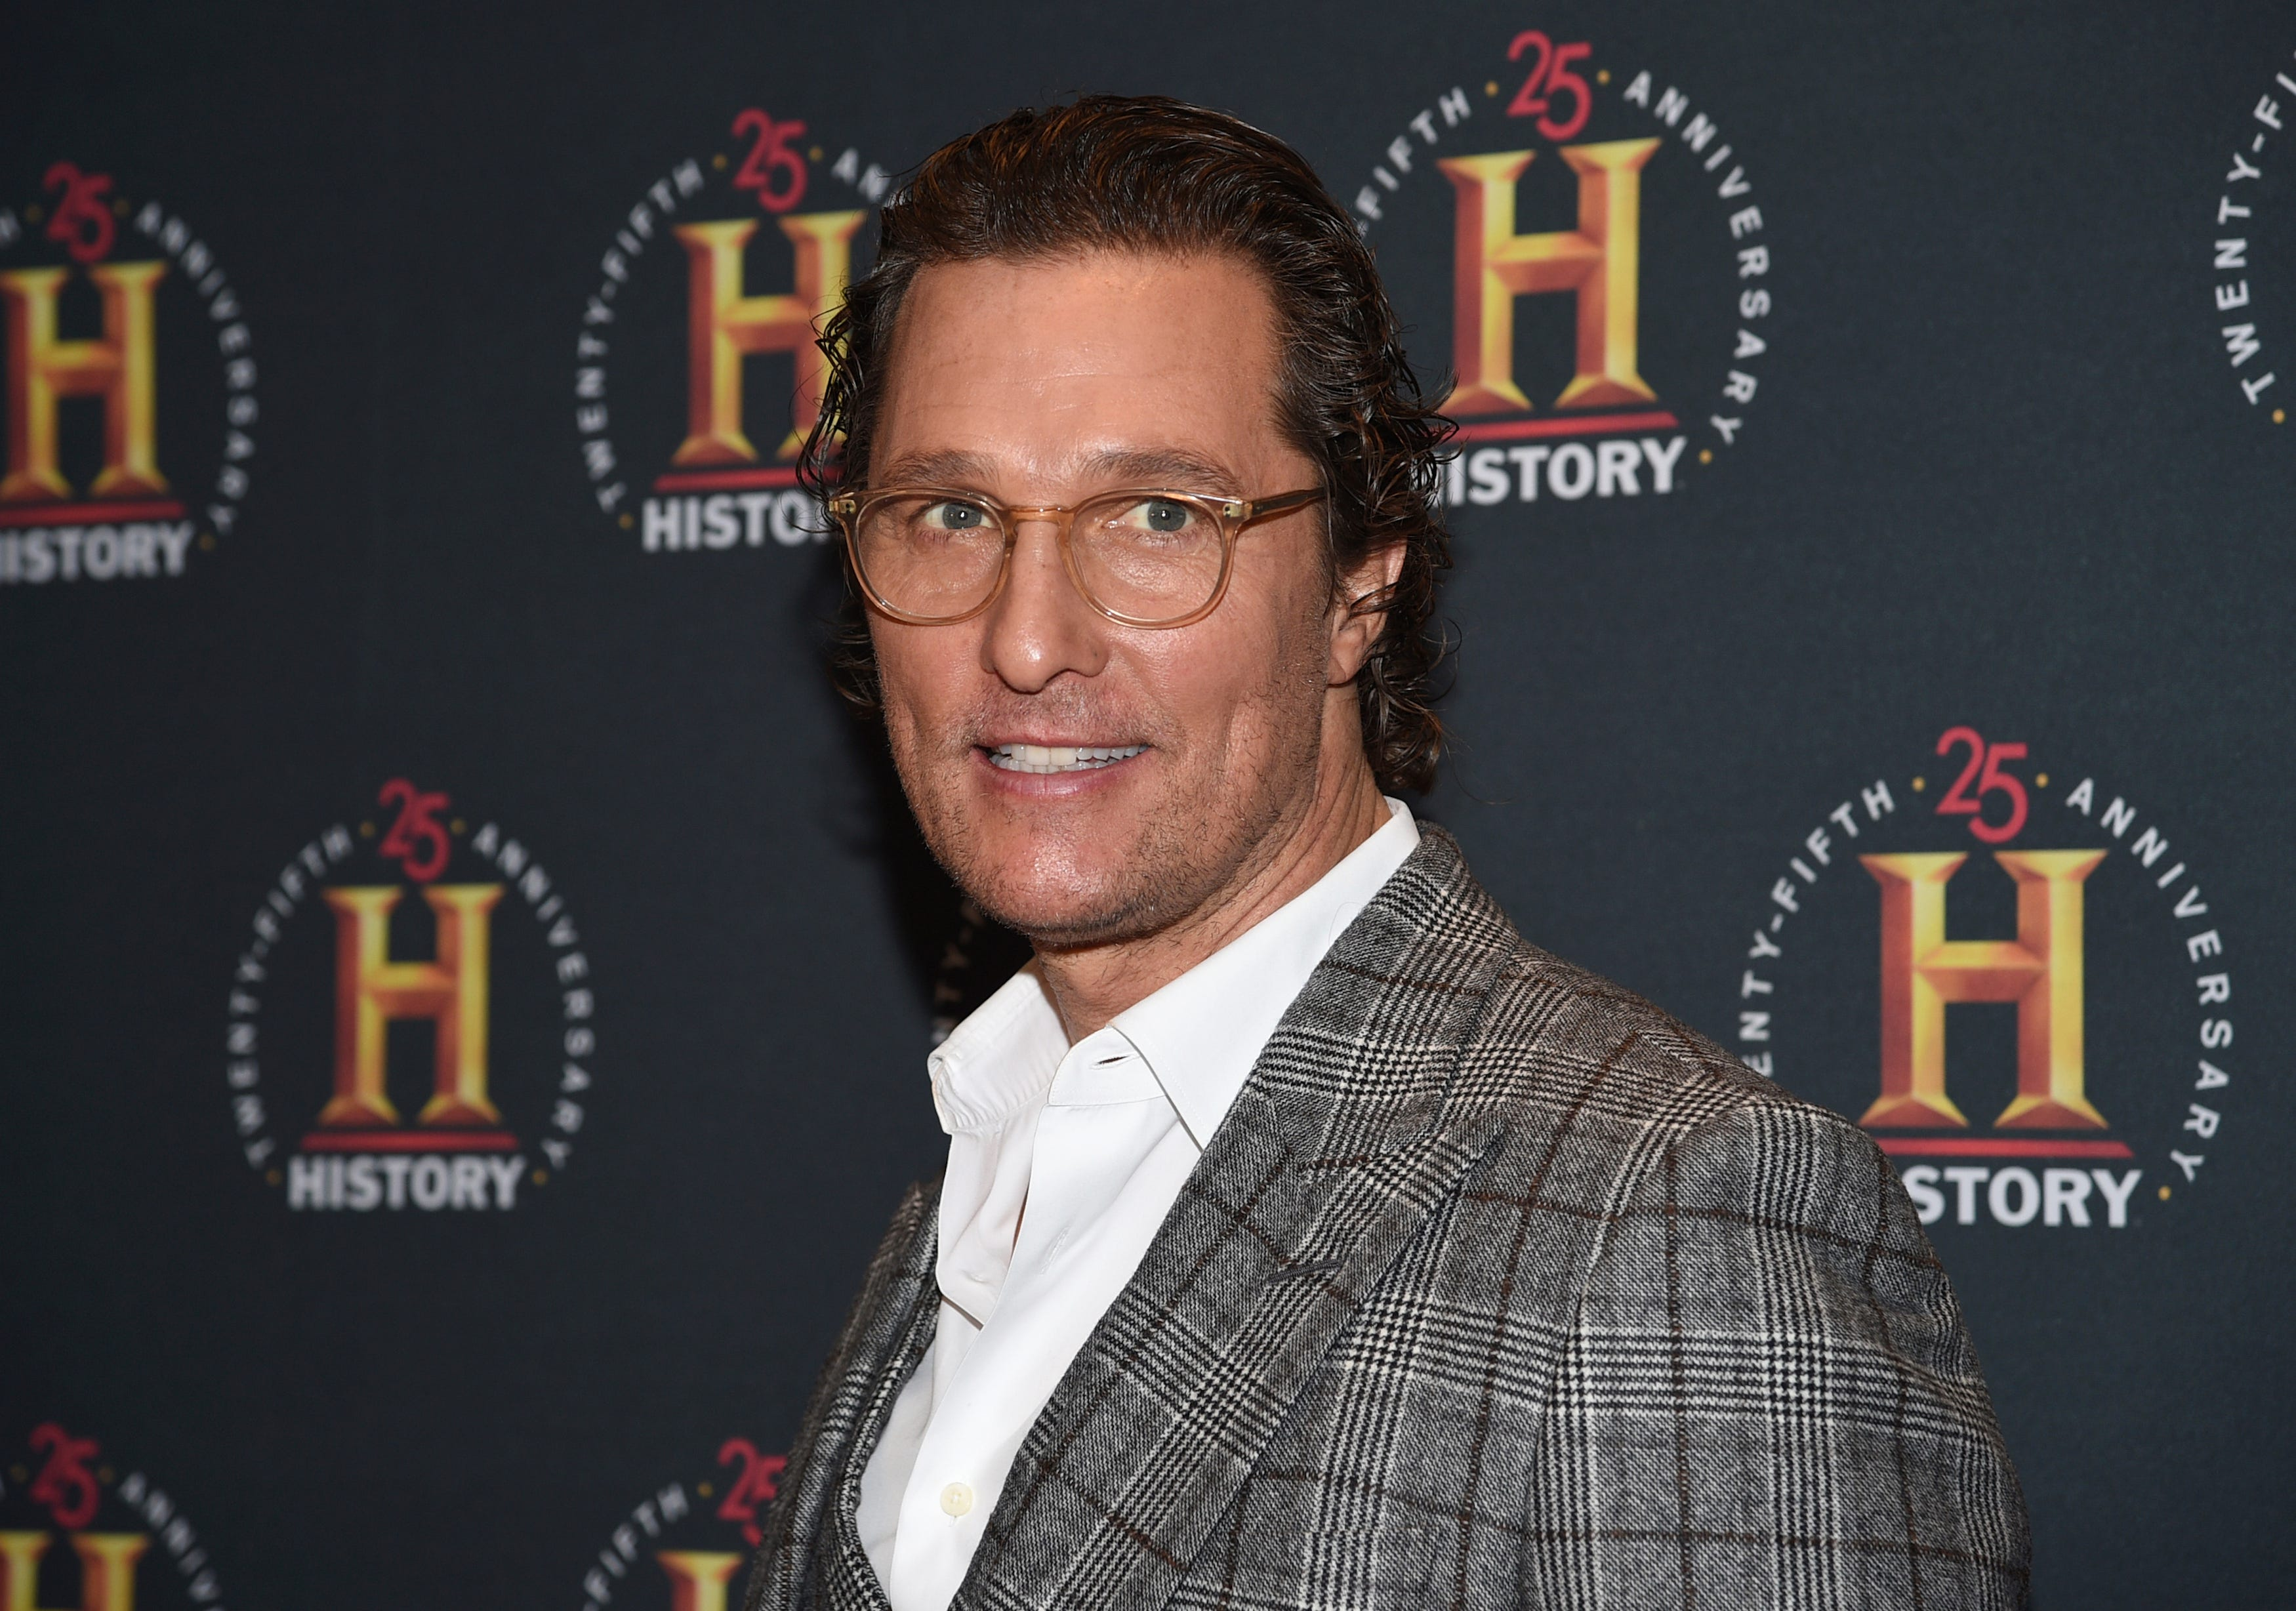 Matthew McConaughey says America is  going through puberty  on July 4th:  This is just a reality